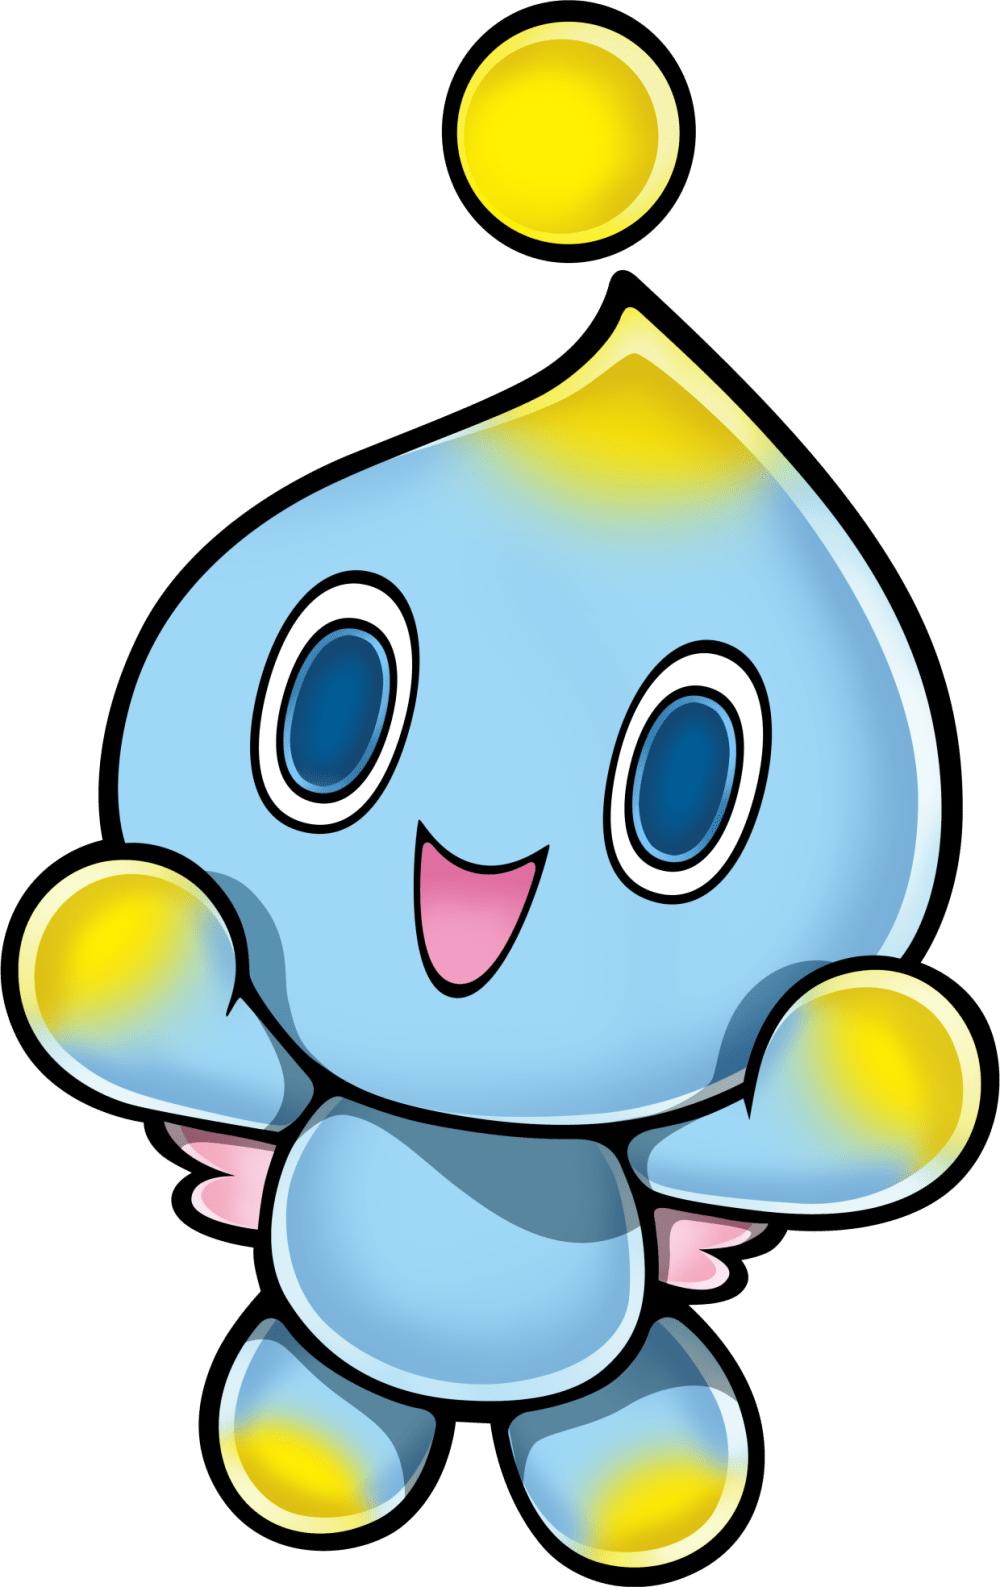 medium resolution of image png sonic news transparent chao translucent picture stock